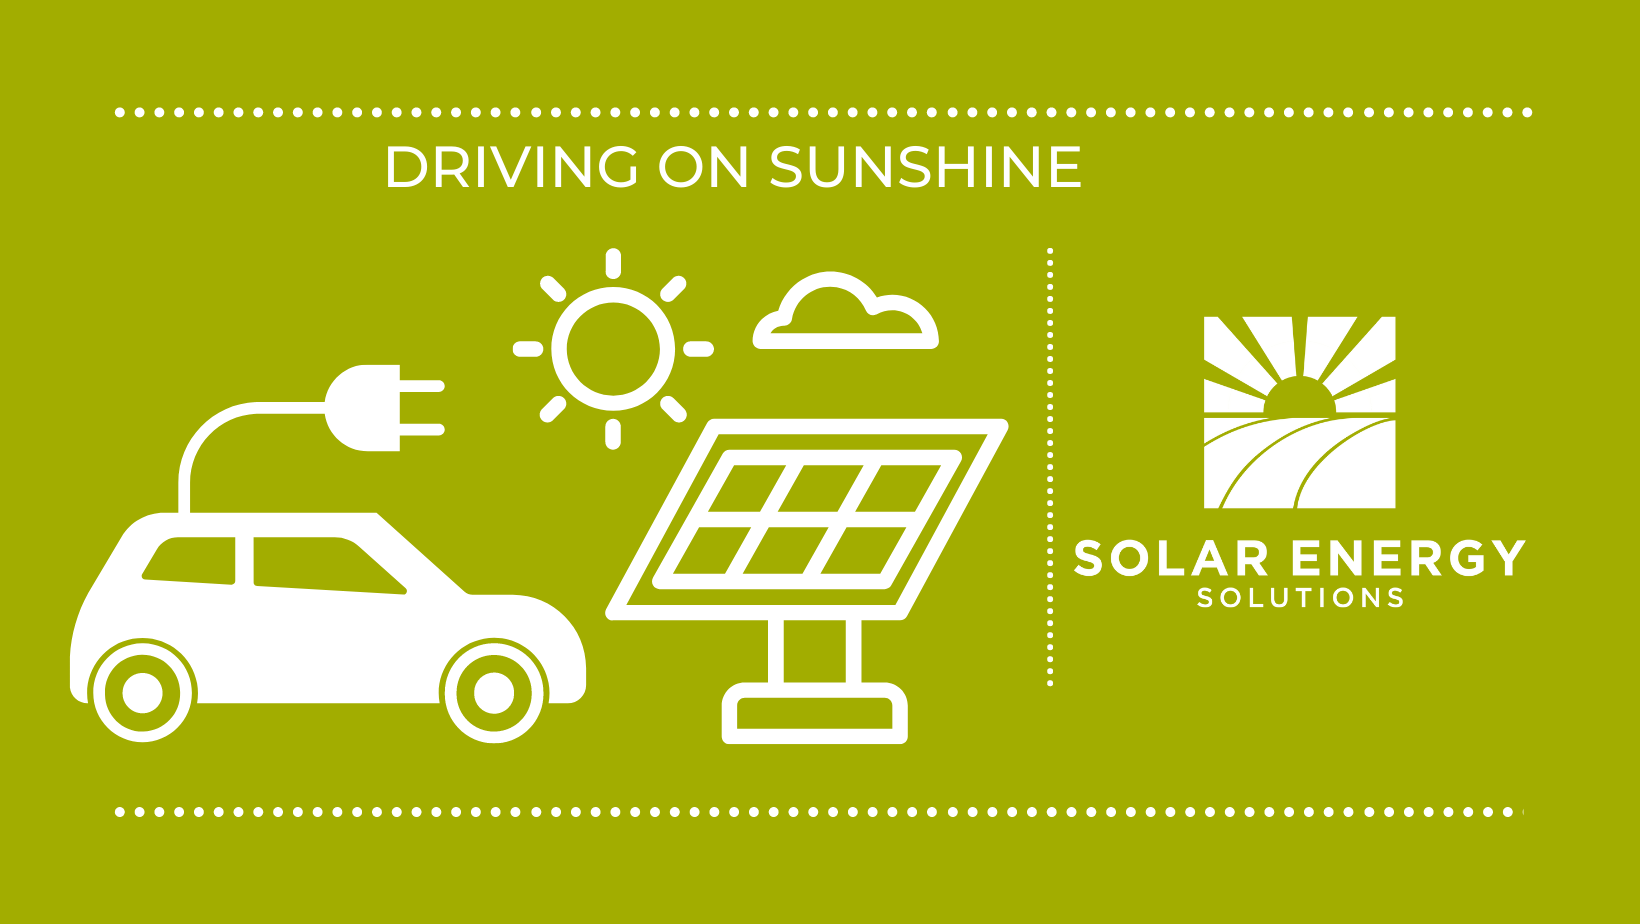 graphic of car with plug to solar panel